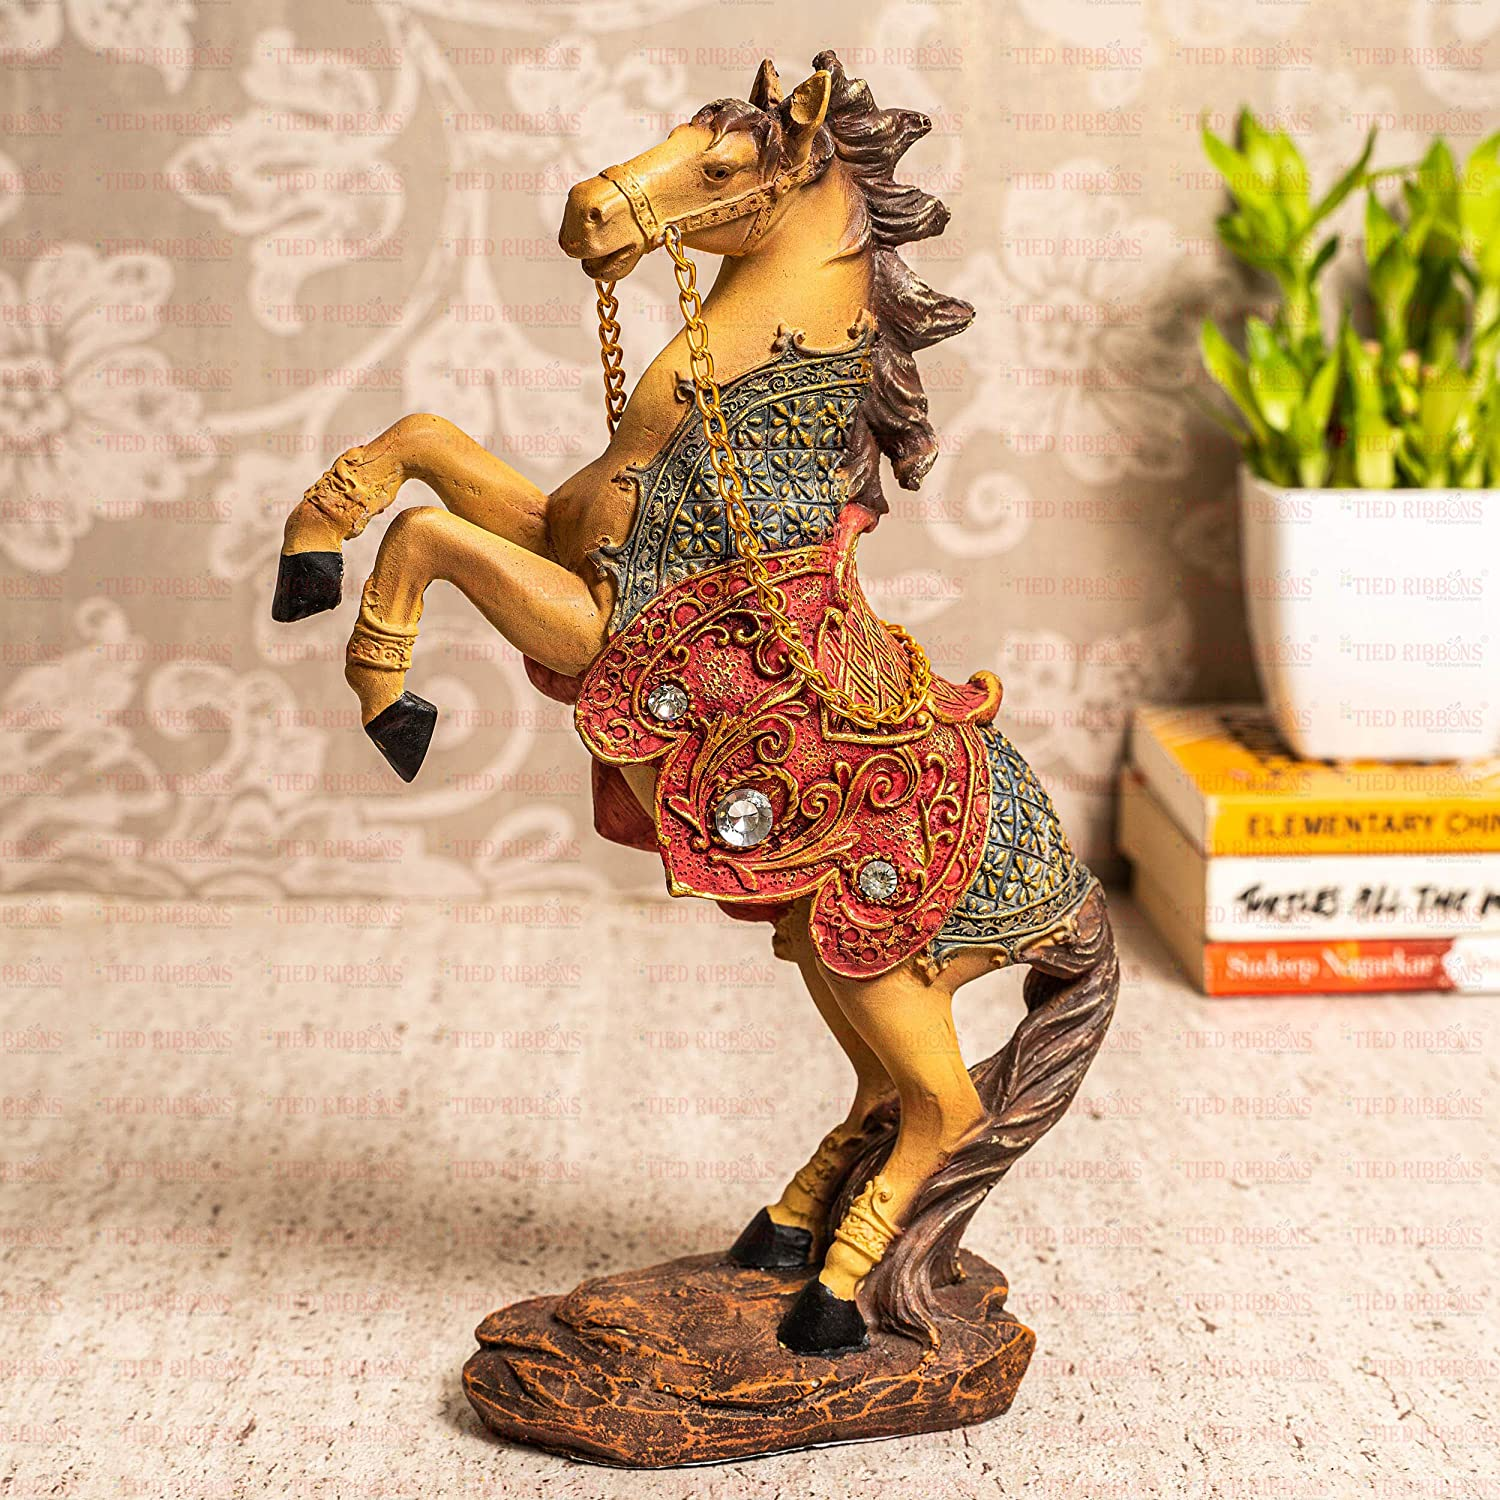 TIED RIBBONS Rearing Horse Showpiece for Good Luck Statue Figurine for Bedroom Home Decorations and Gifts (Polyresin, 15 cm X 18 cm)